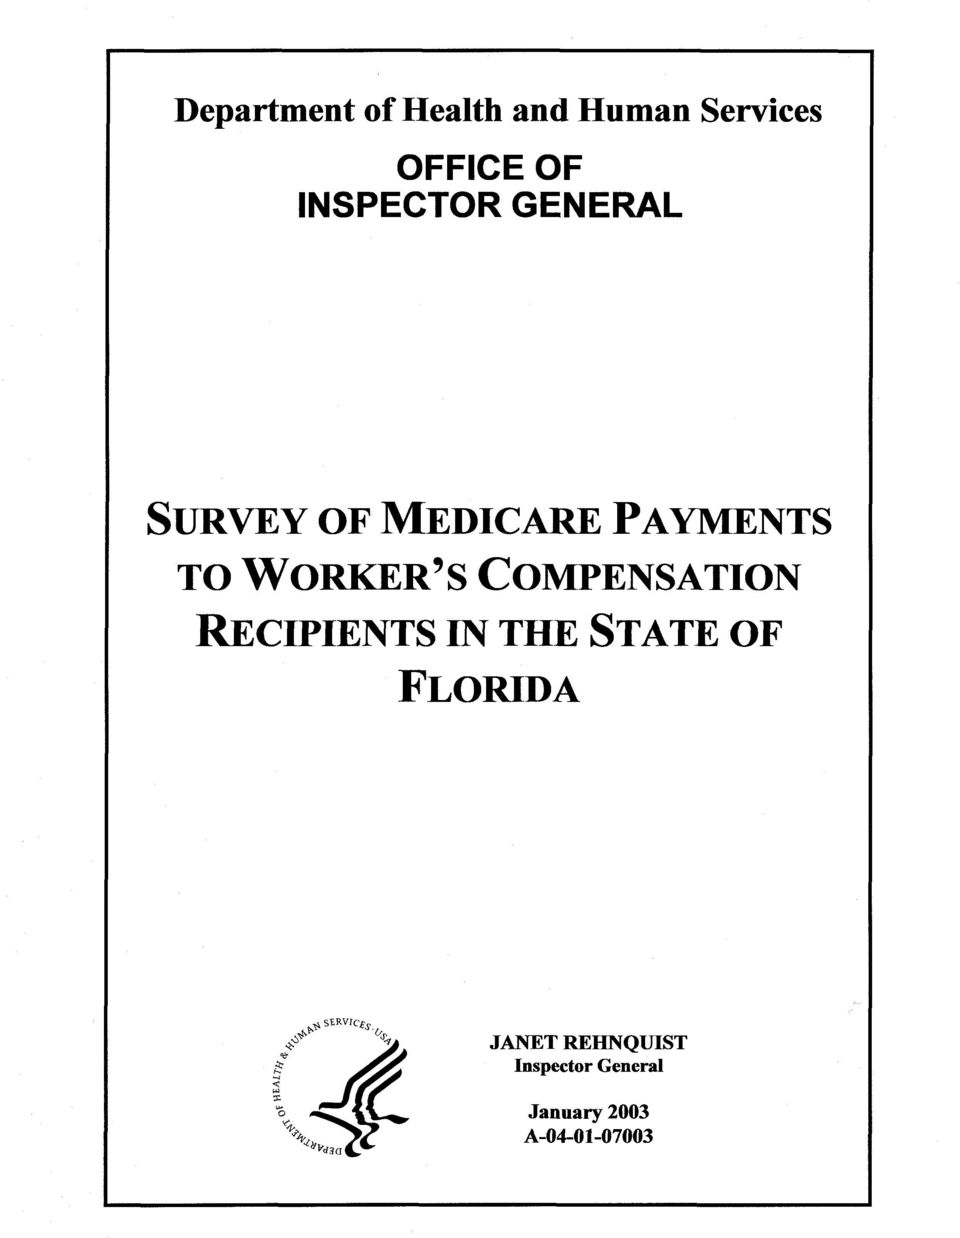 S COMPENSATION RECIPIENTS IN THE STATE OF FLORIDA